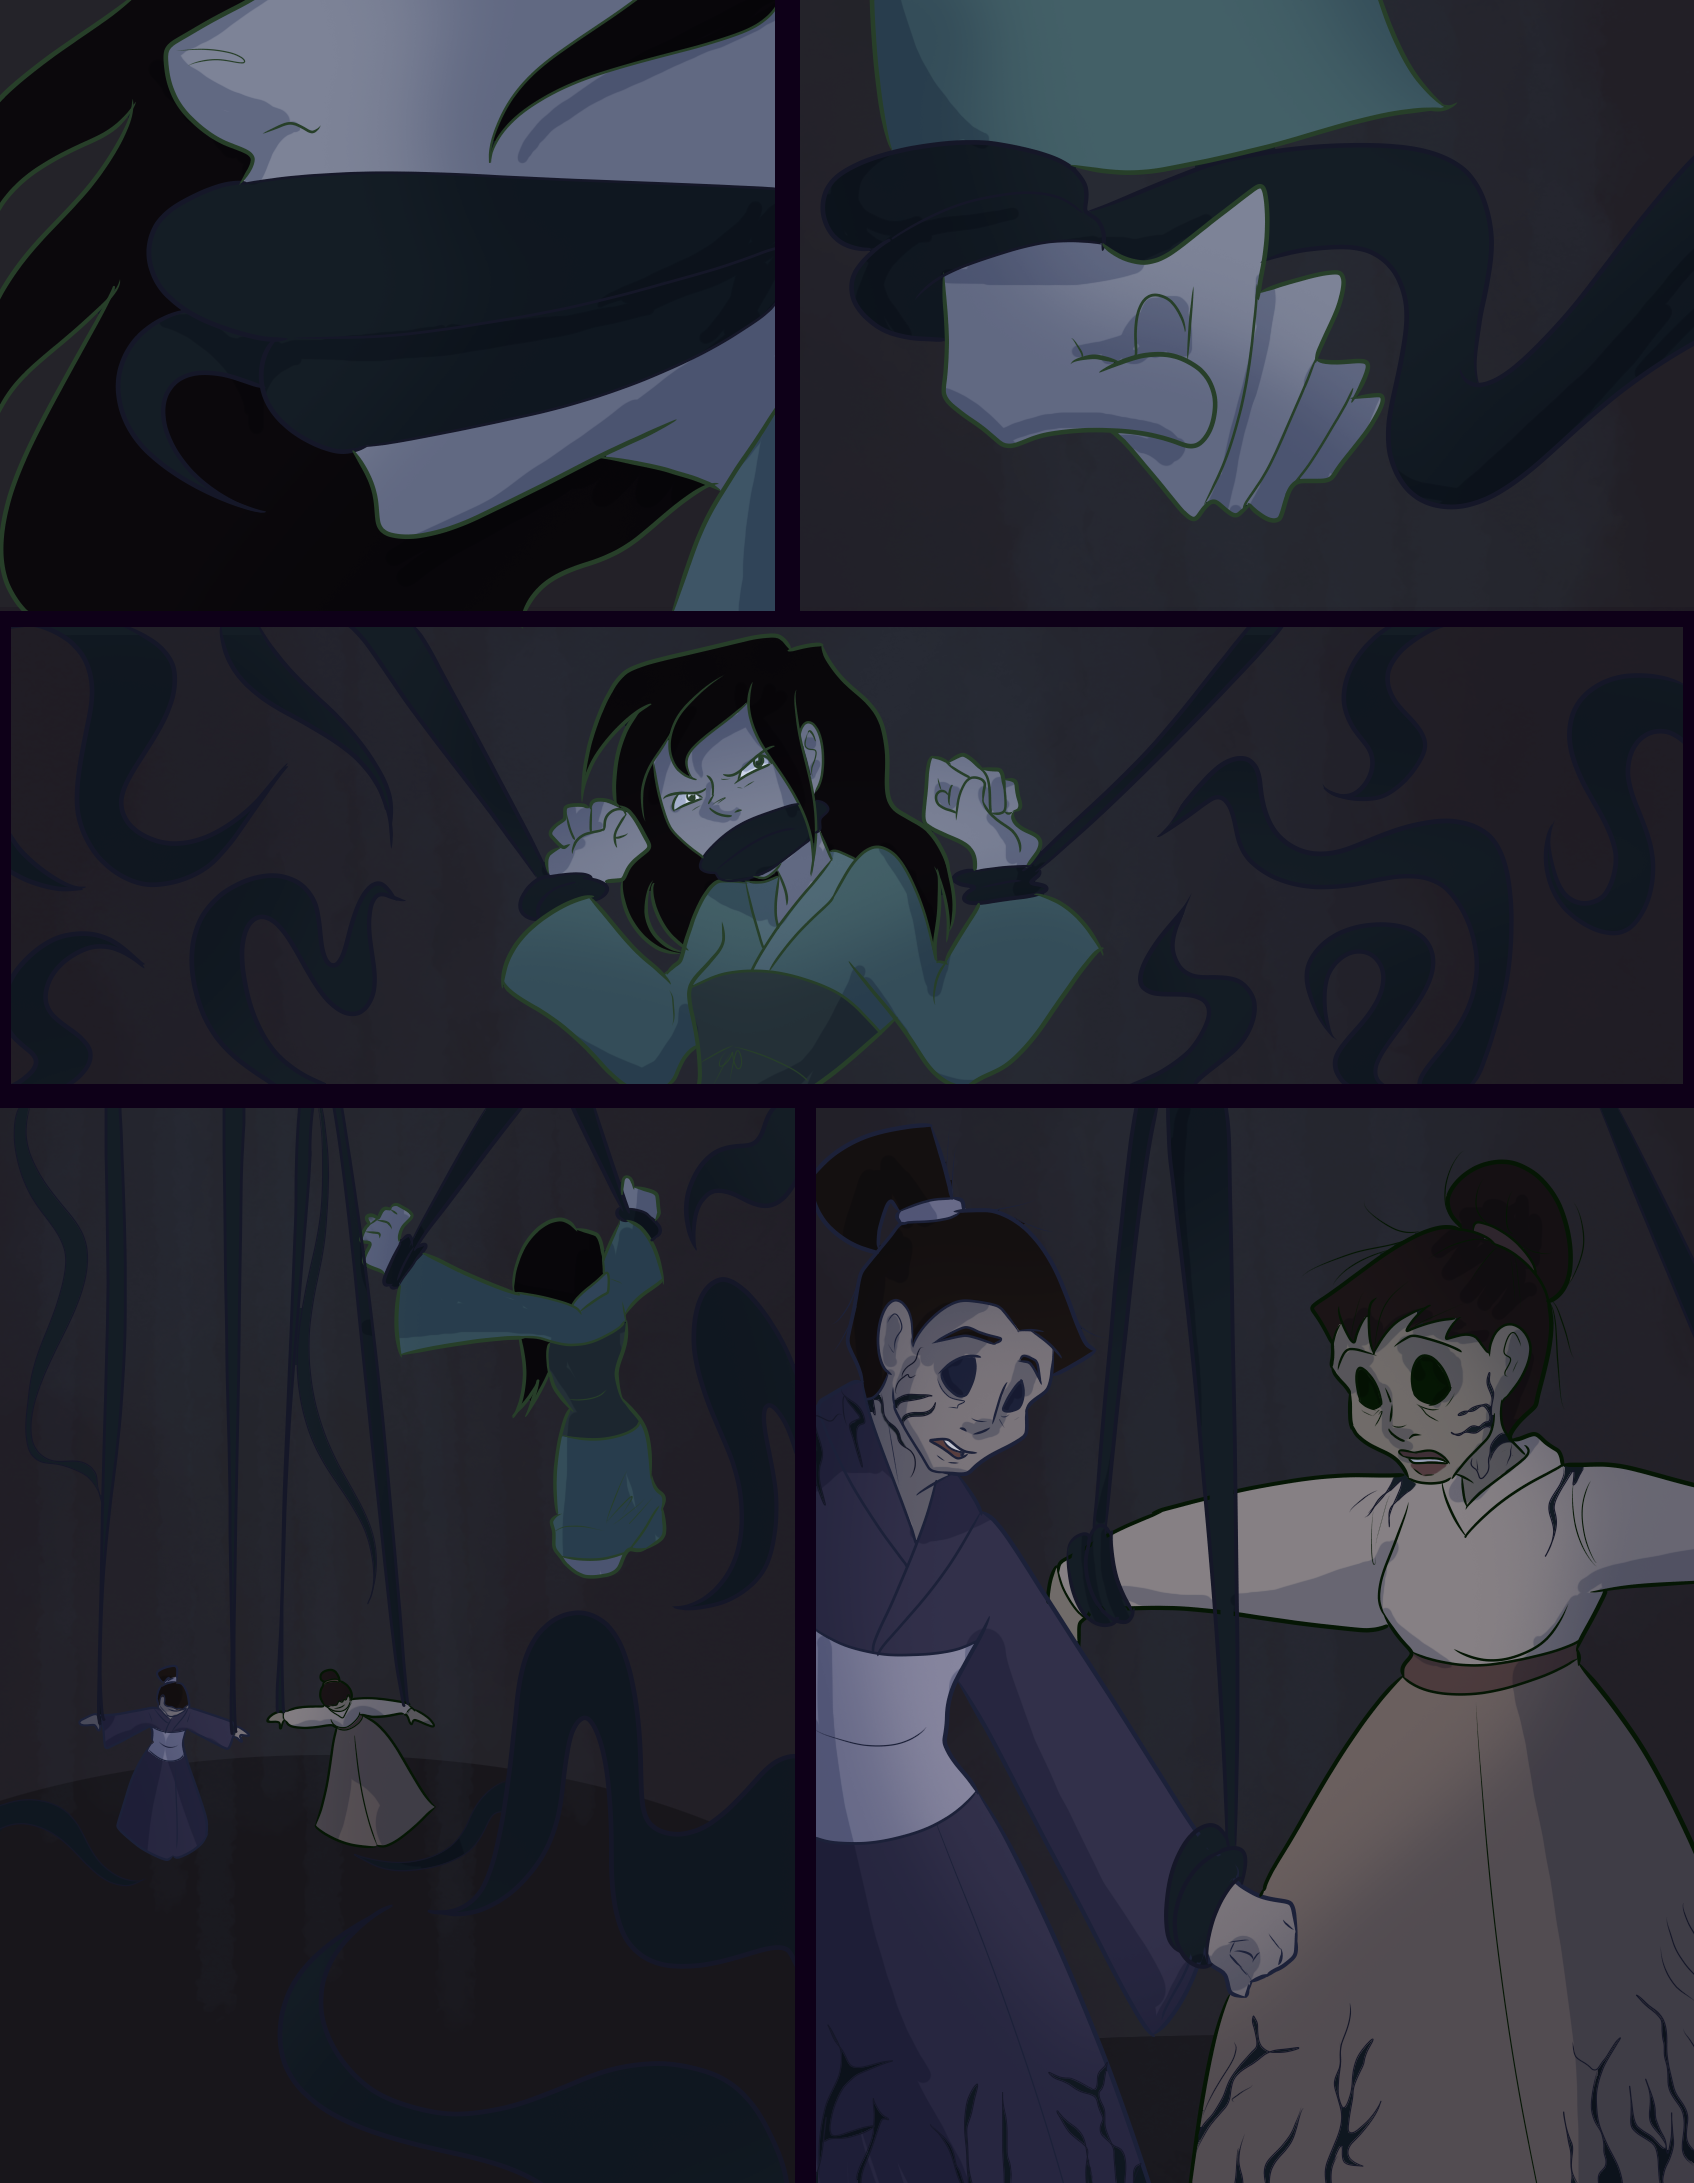 Patricia: Page 154